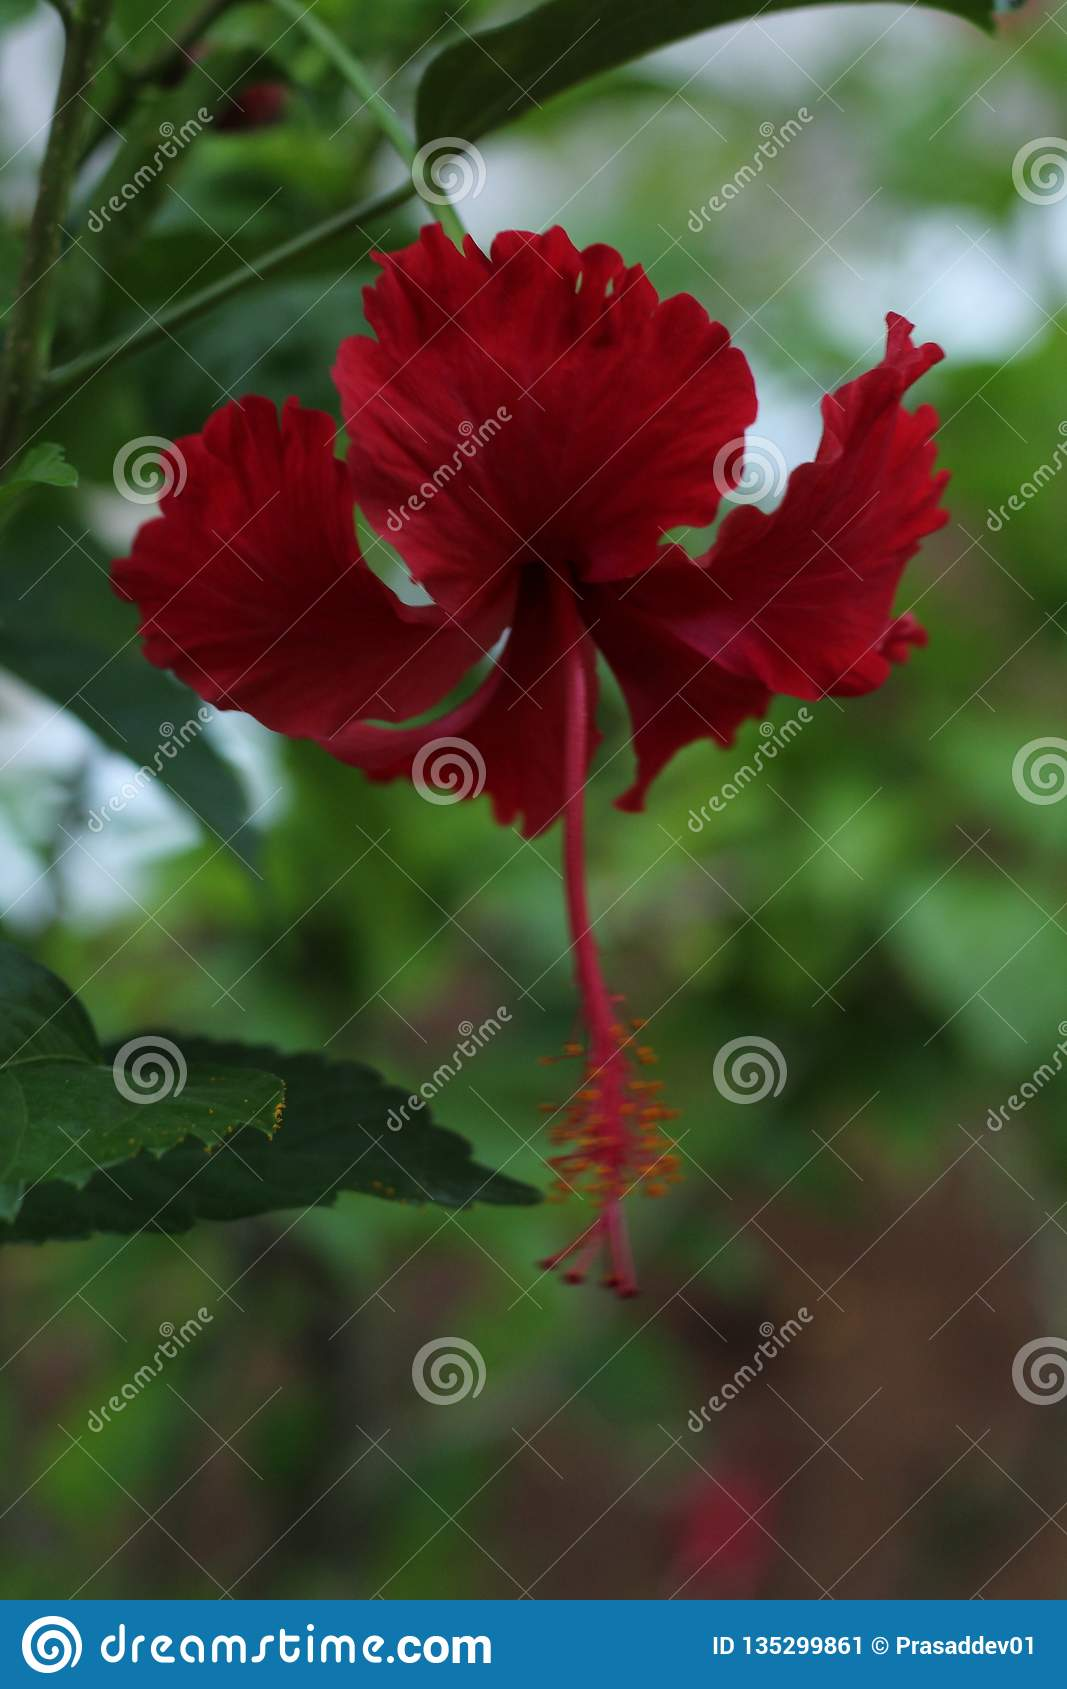 Red Hibiscus Flower In Garden Stock Image Image Of Green Leaves 135299861